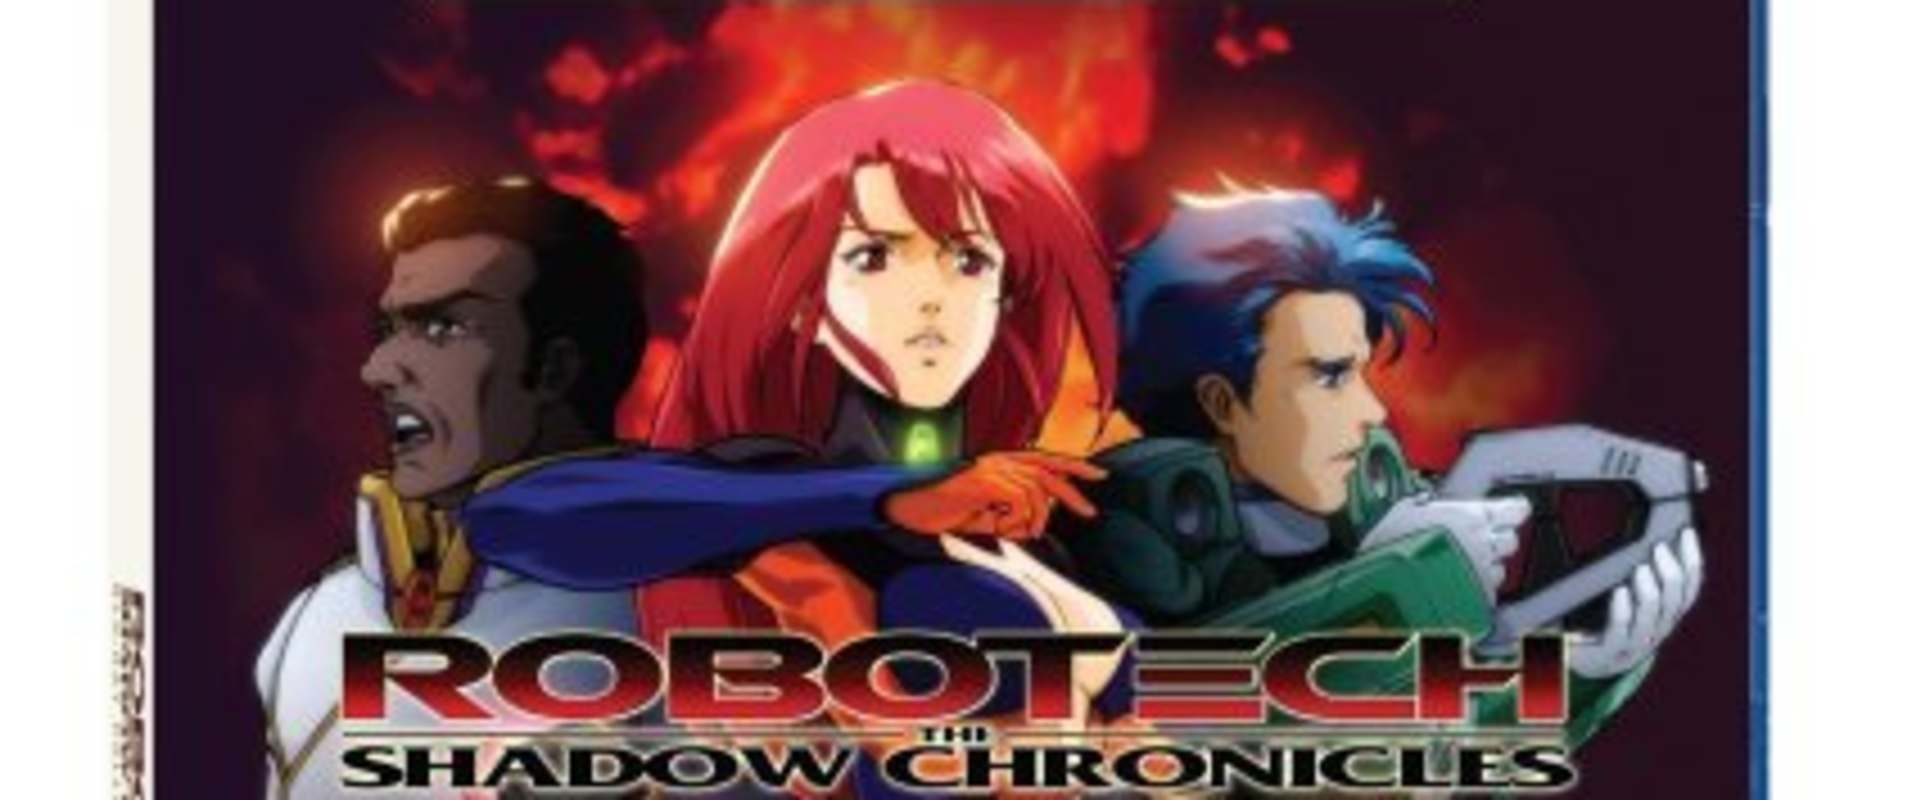 Robotech: The Shadow Chronicles background 1